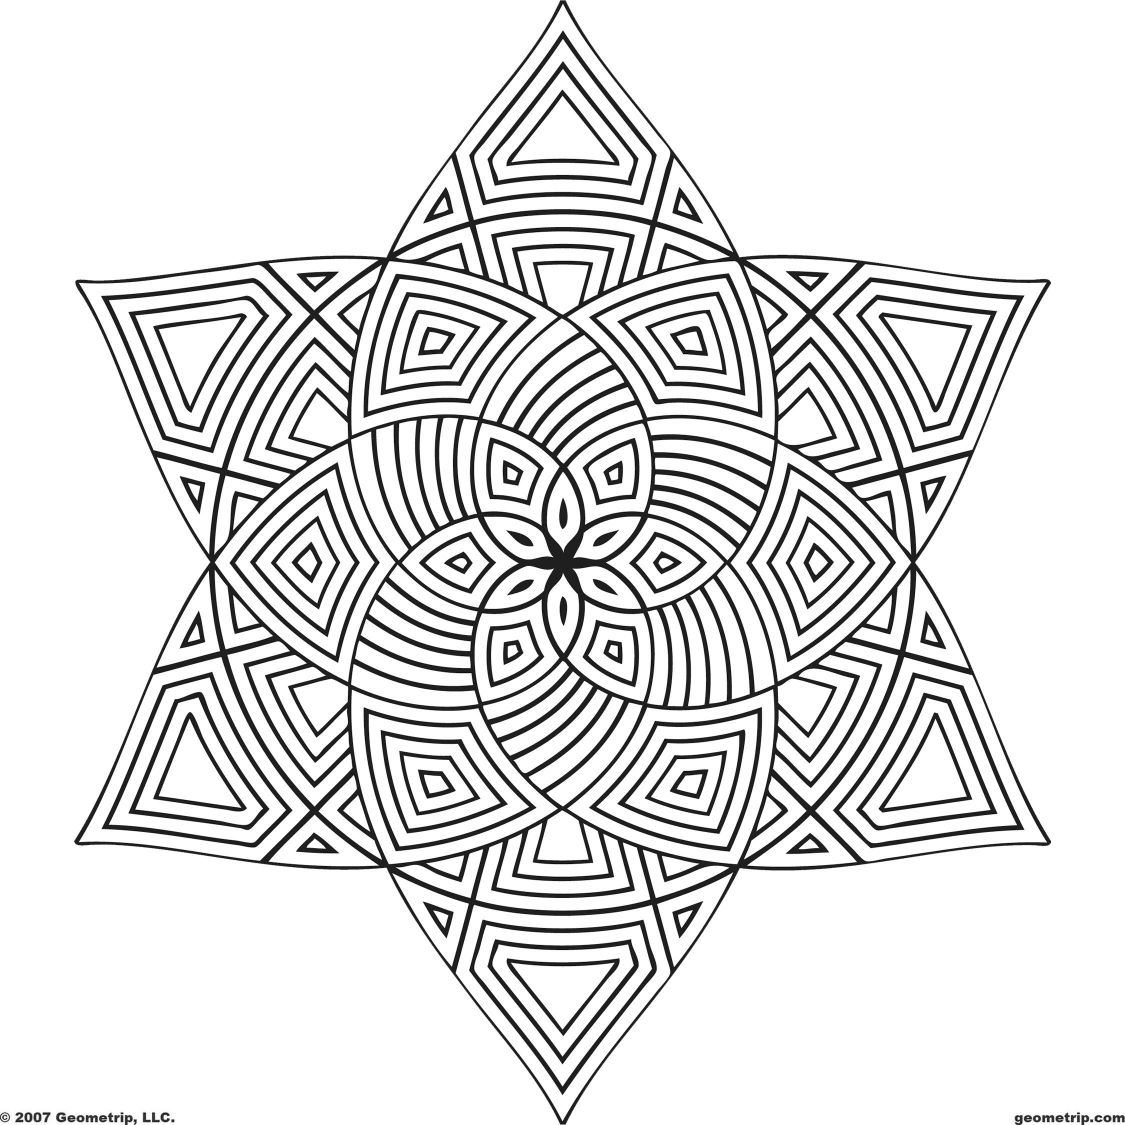 1125x1125 Fascinating Printable Geometric Coloring Pages For Adults Pic